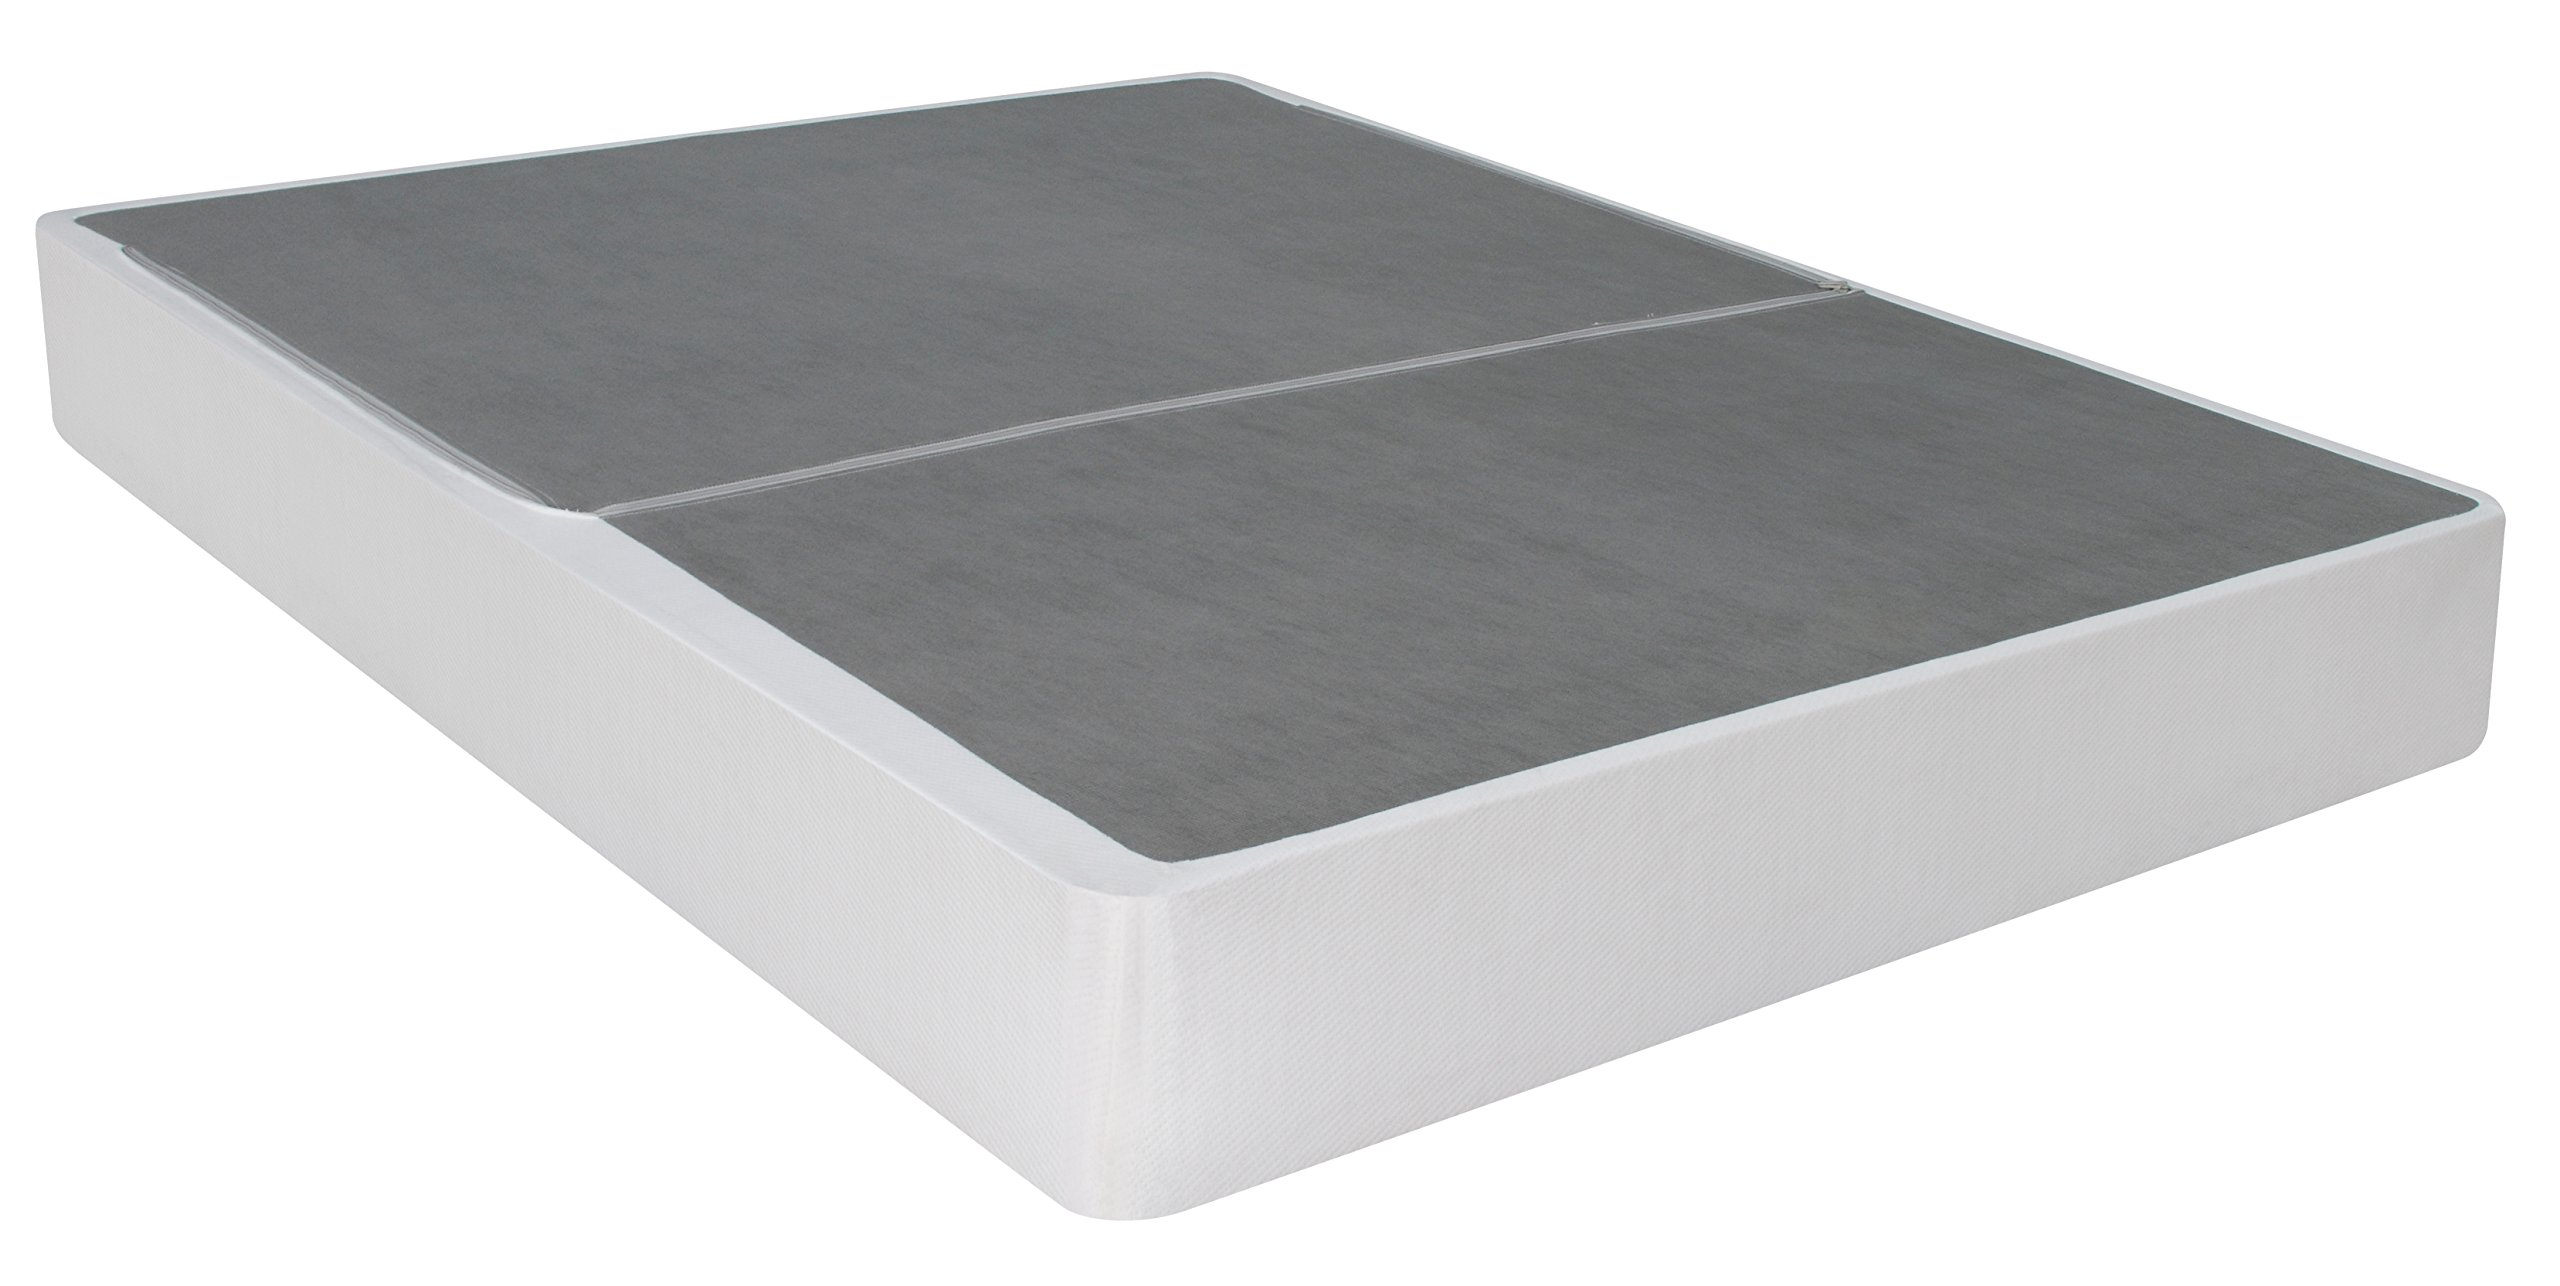 Best Price 7.5'' New Steel Box Spring/Mattress Foundation, Queen